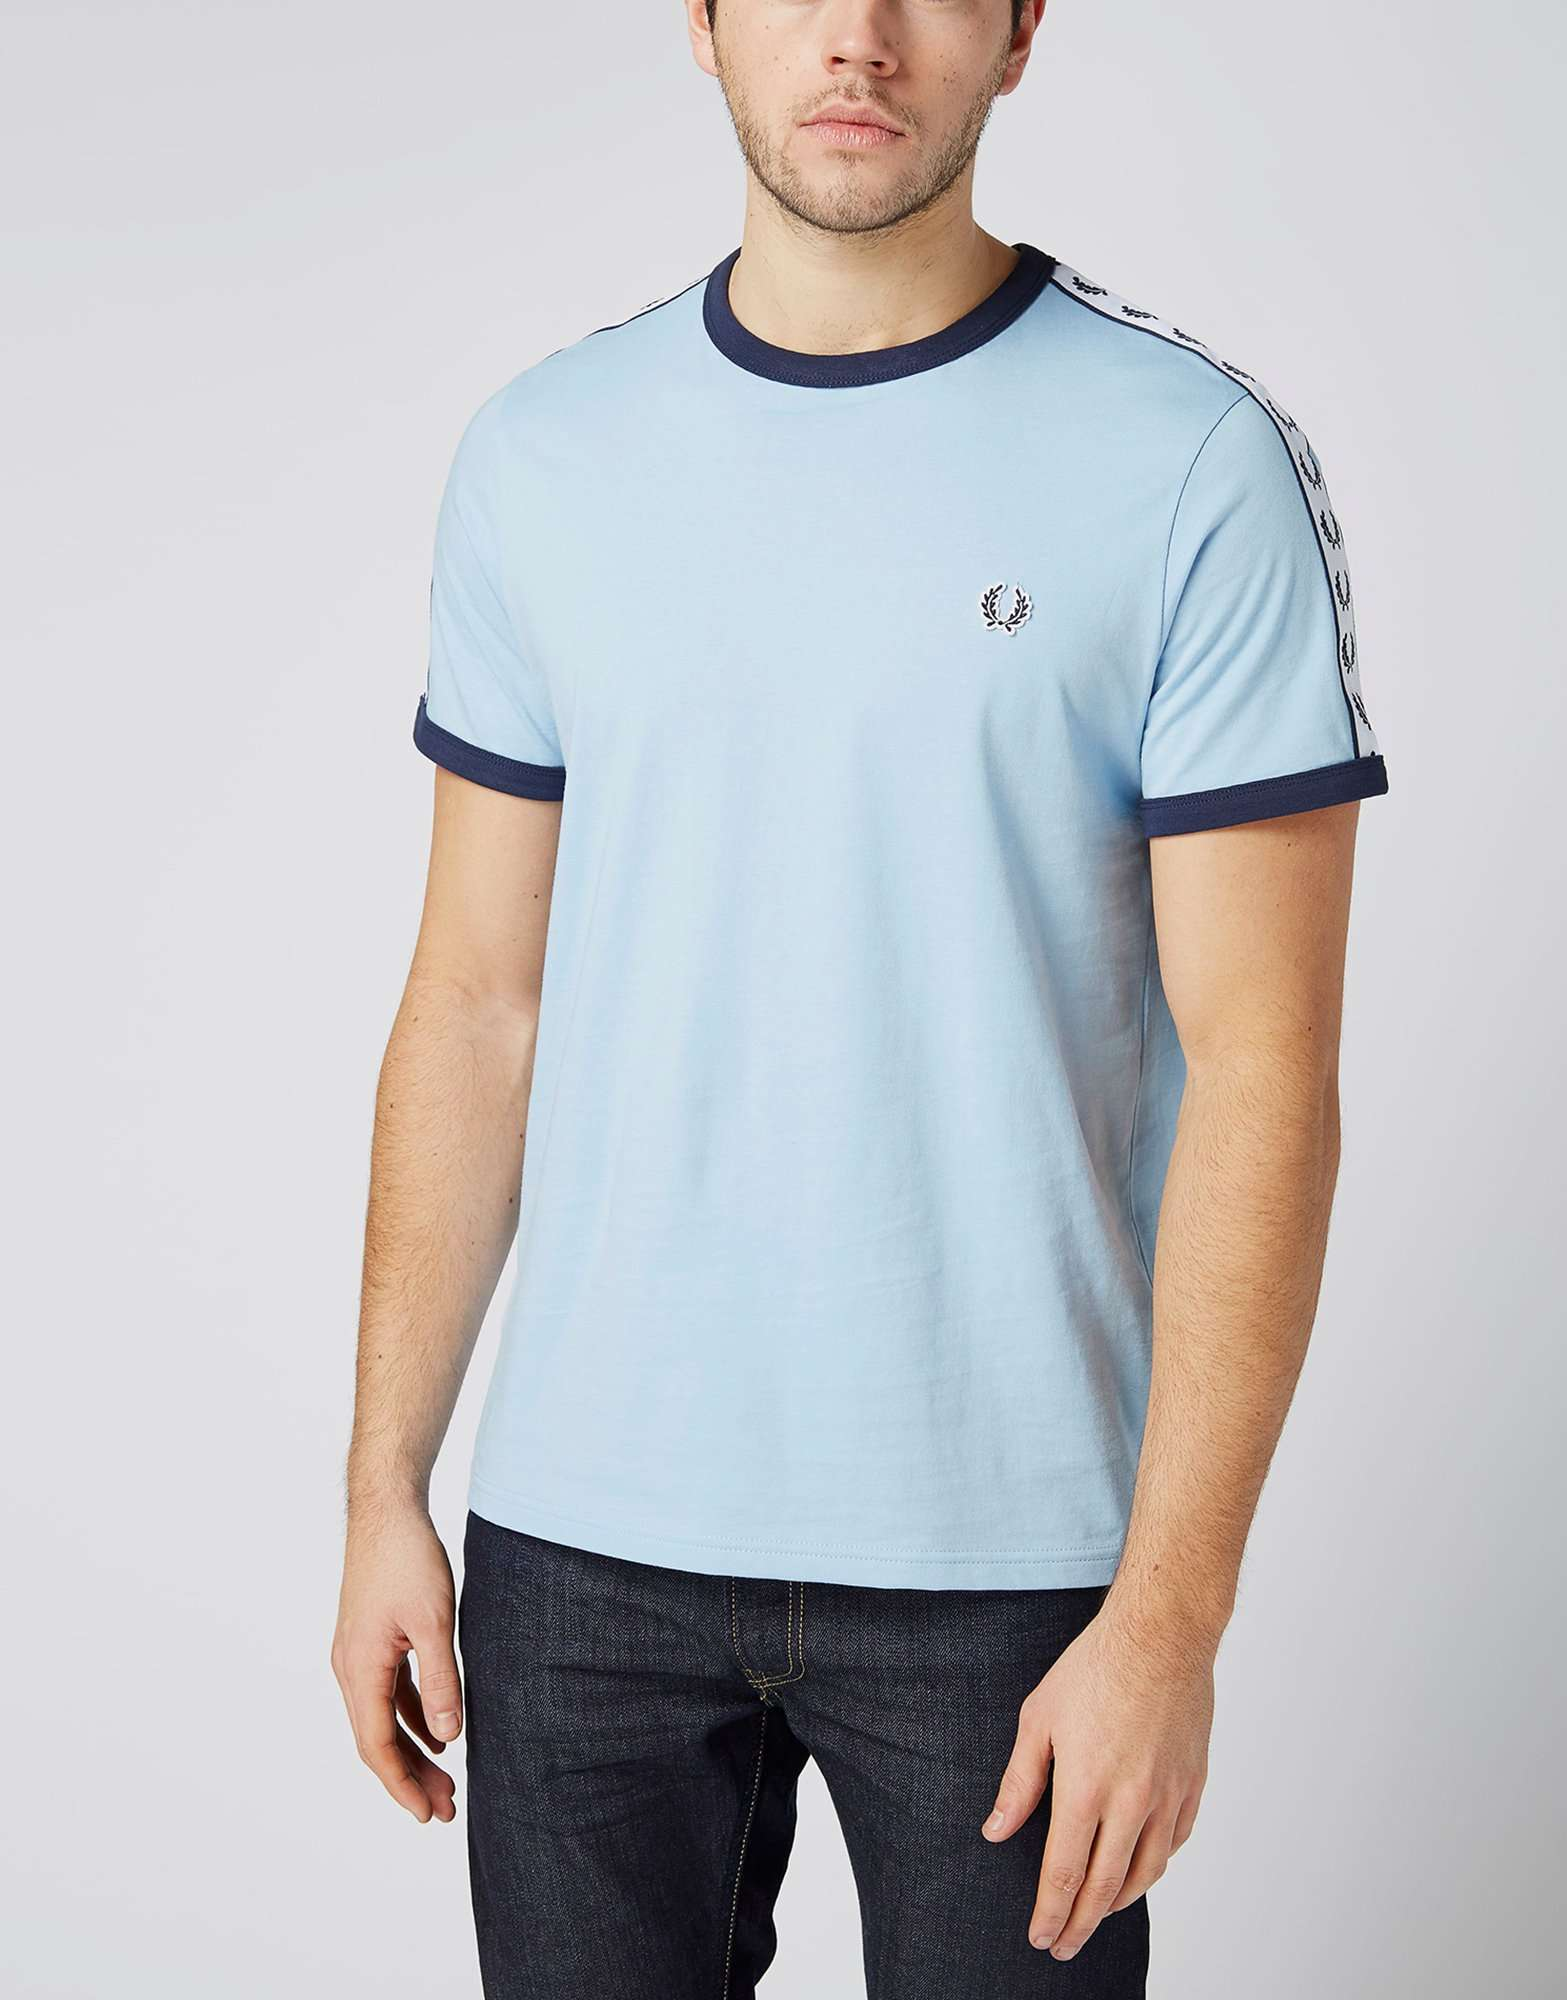 fred perry taped retro ringer t shirt scotts menswear. Black Bedroom Furniture Sets. Home Design Ideas